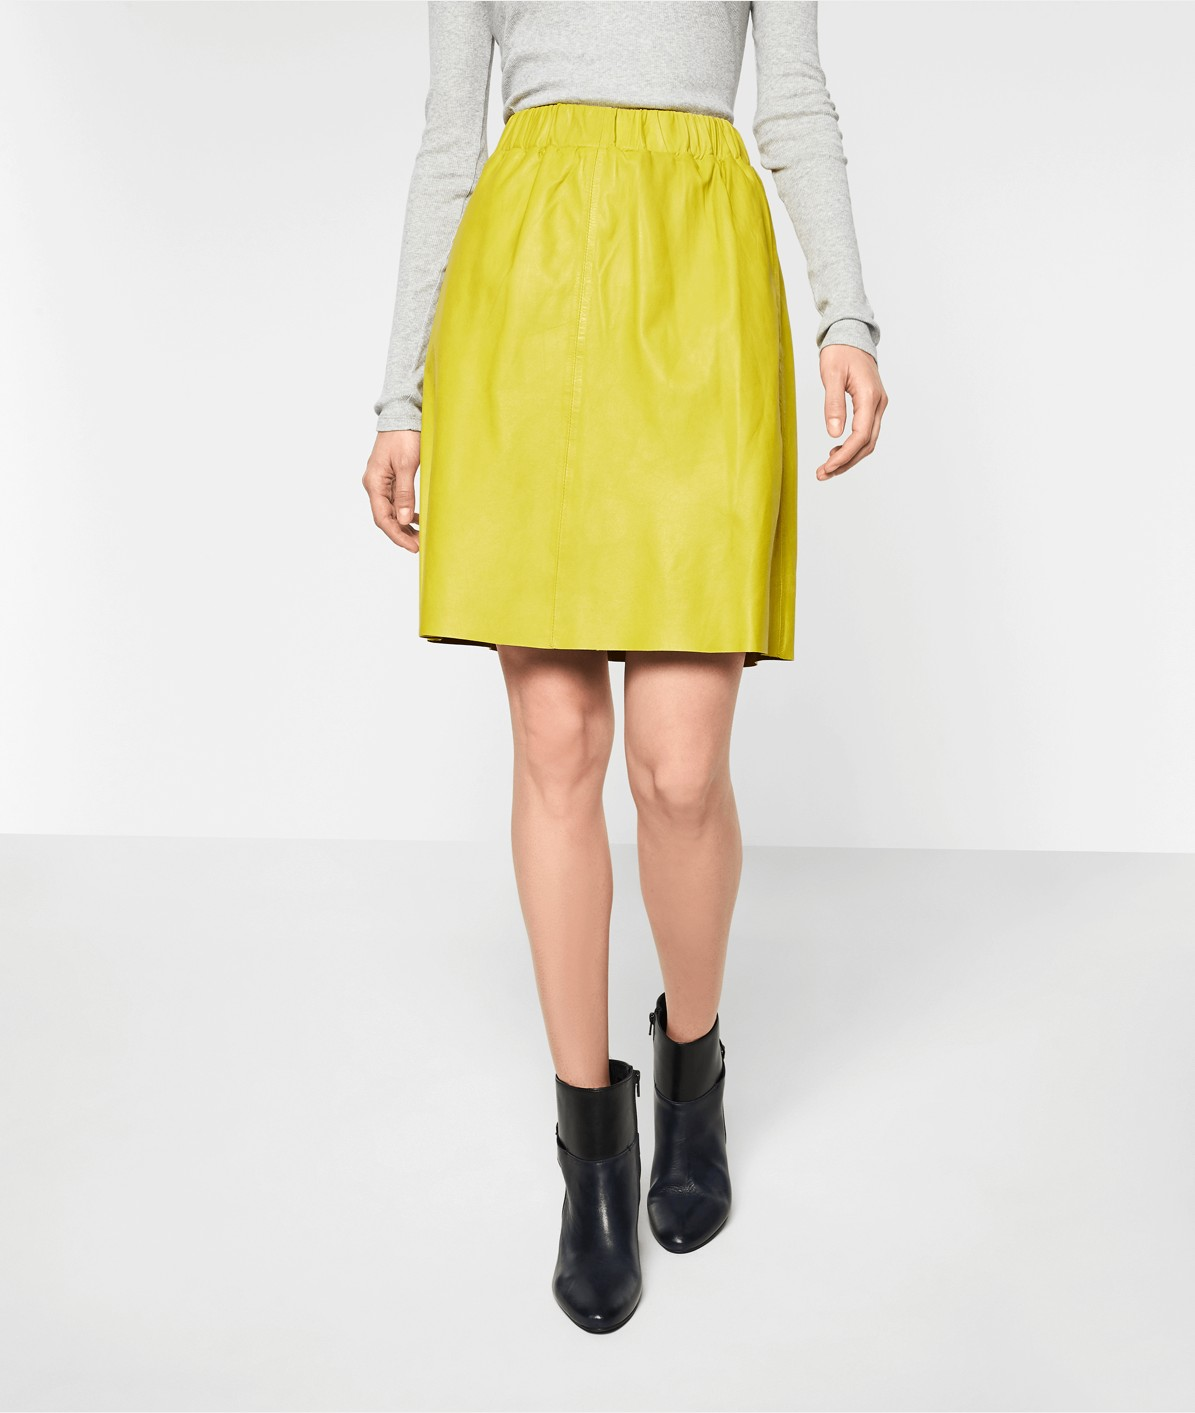 dcb4c63587 ... Soft leather skirt from liebeskind ...